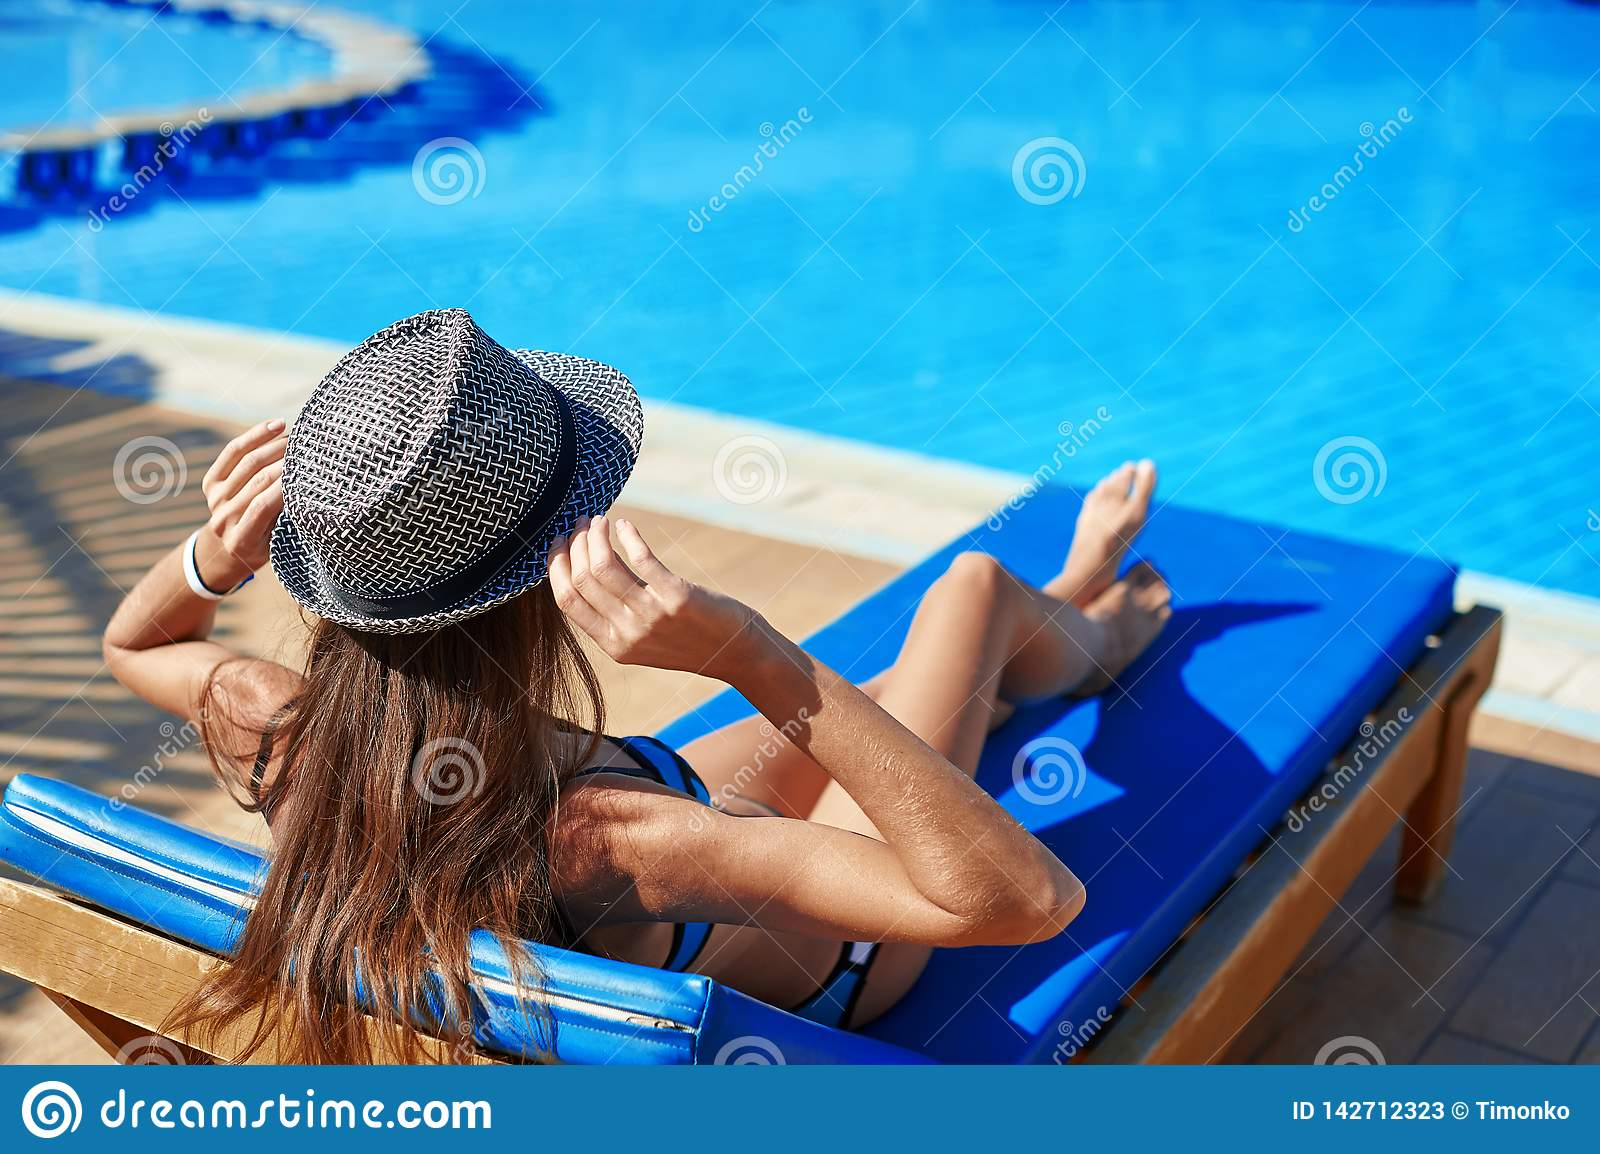 Woman in hat lying on a lounger near the swimming pool at the hotel, concept summer time to travel relax